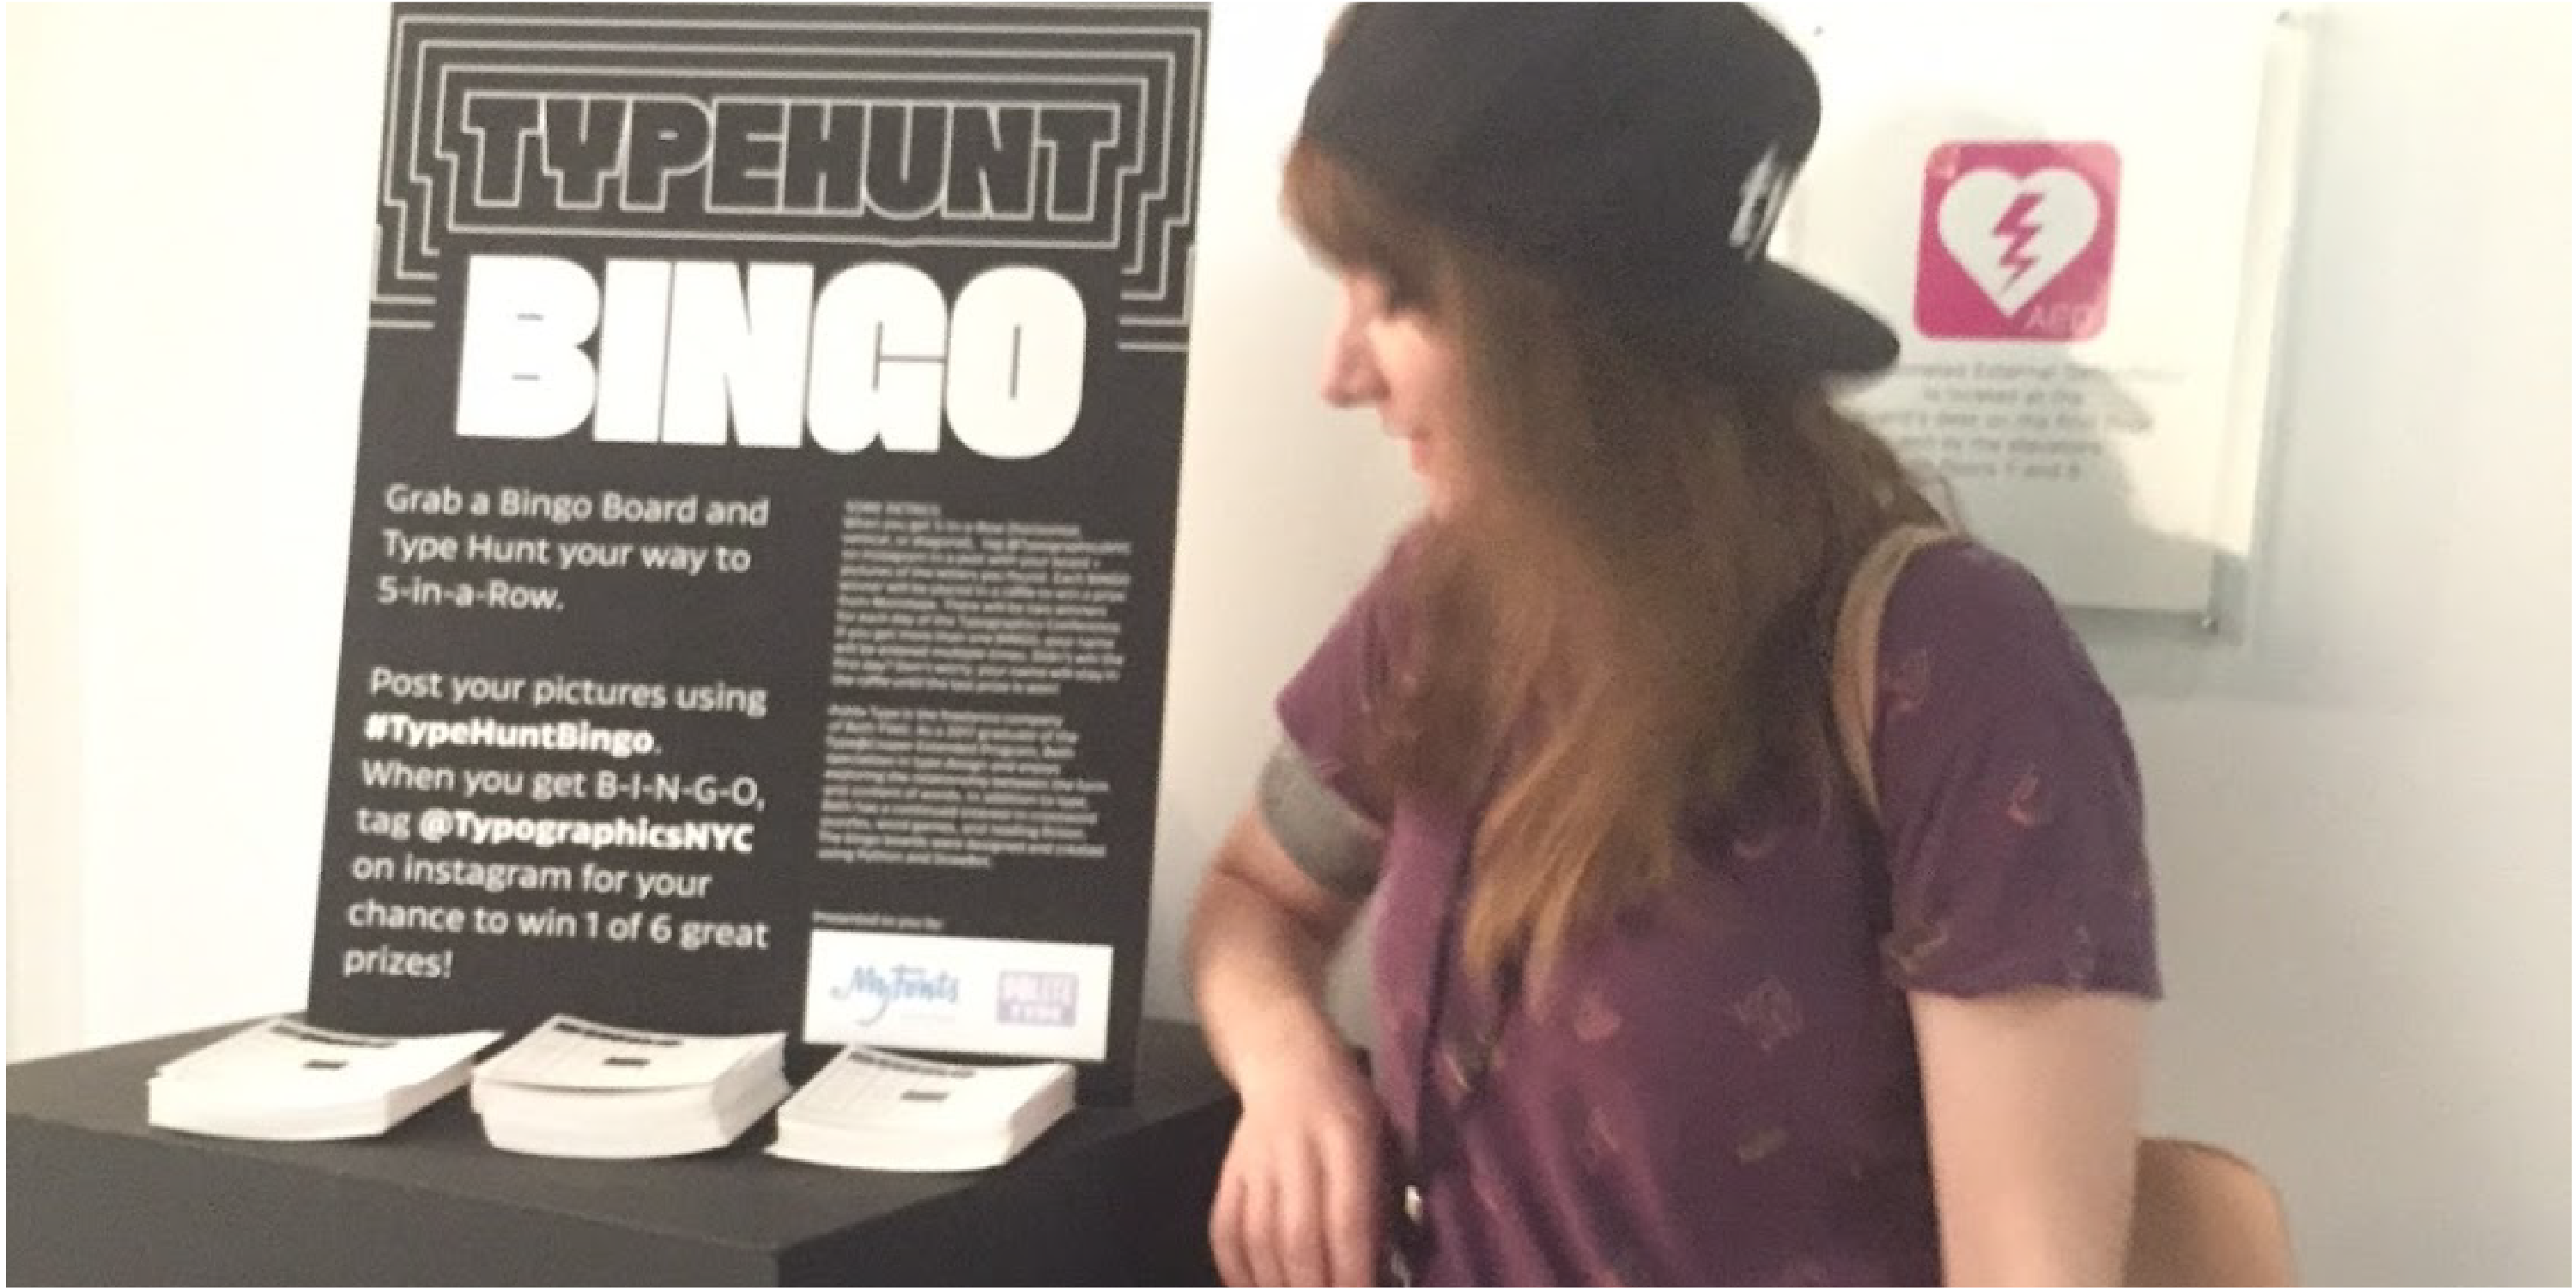 A photo of Beth, a white woman with brown hair and a backwards baseball cap, standing in front of a display for the TypeHuntBingo cards and a sign with instructions..